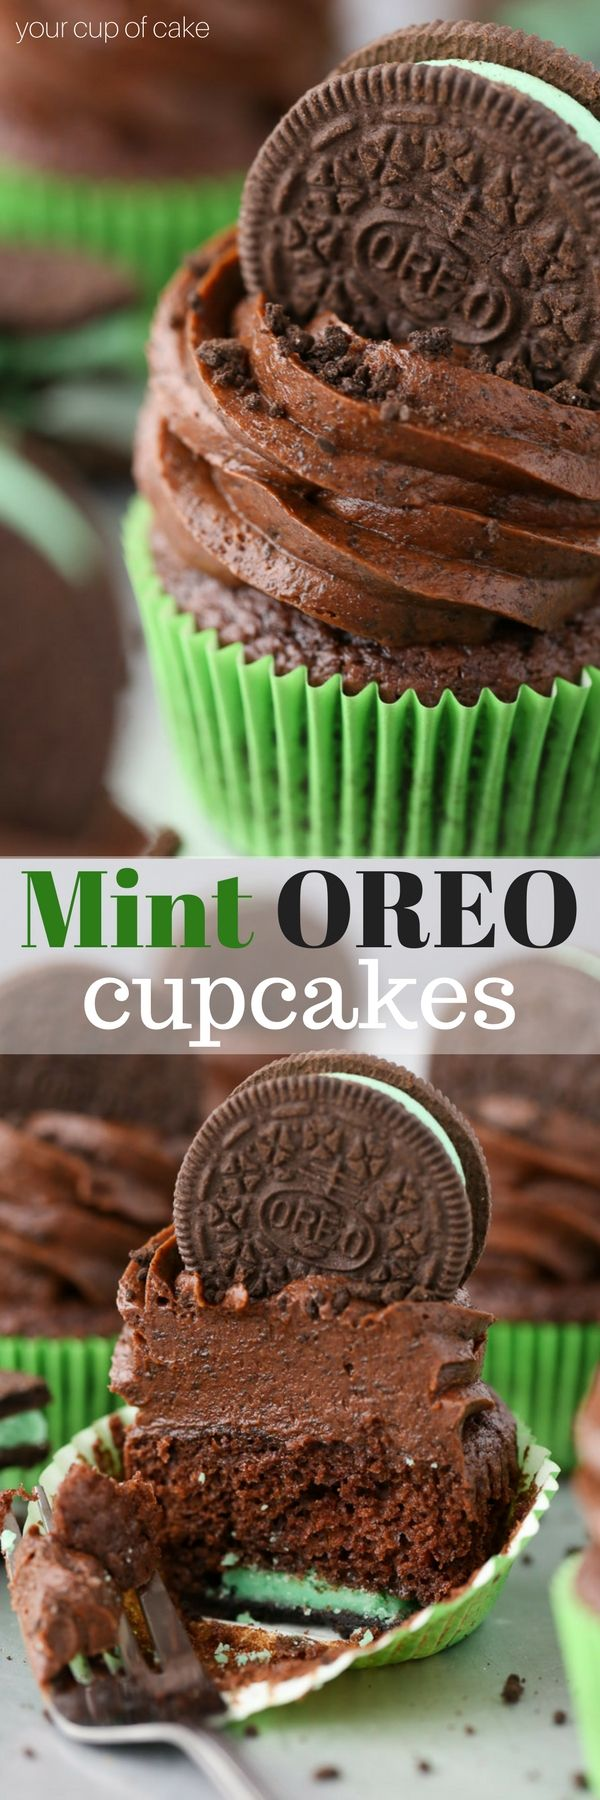 Mint Oreo Cupcakes with Chocolate Oreo Frosting